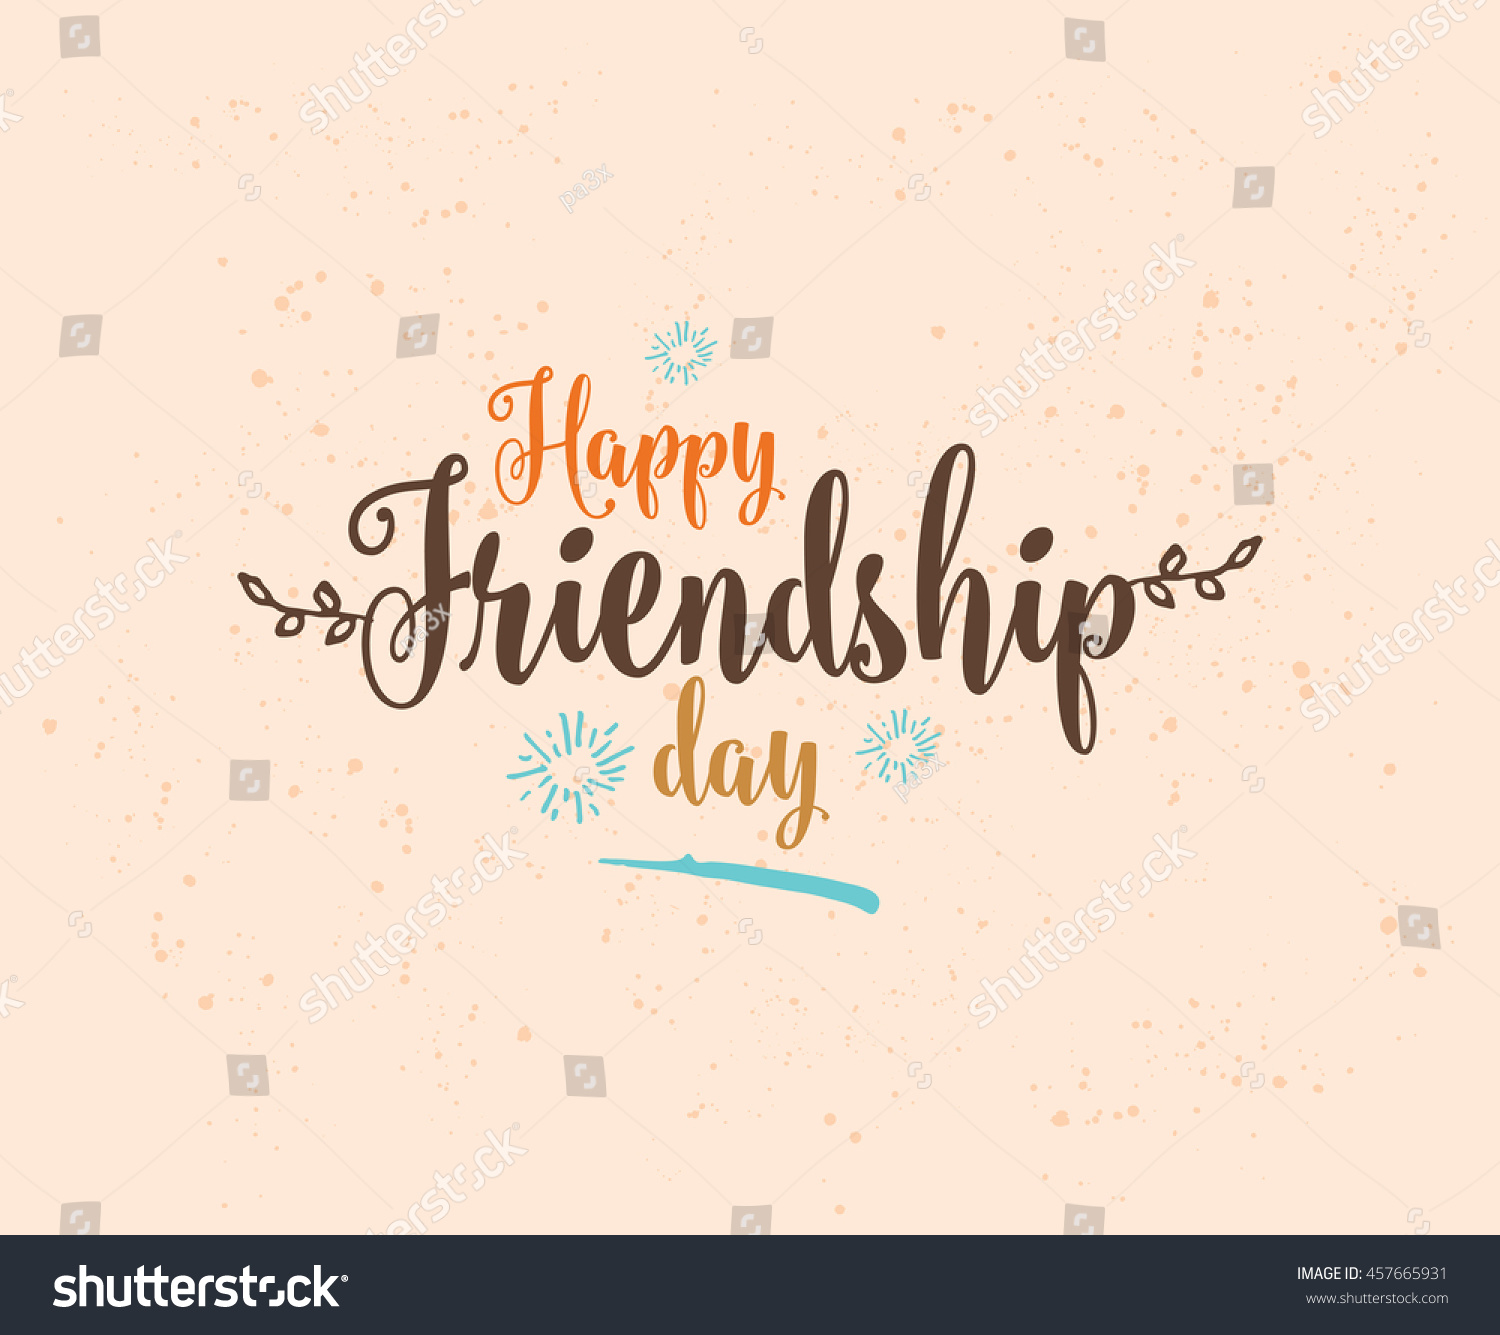 Happy Days Quotes Inspirational: Happy Friendship Day Vector Typographic Design